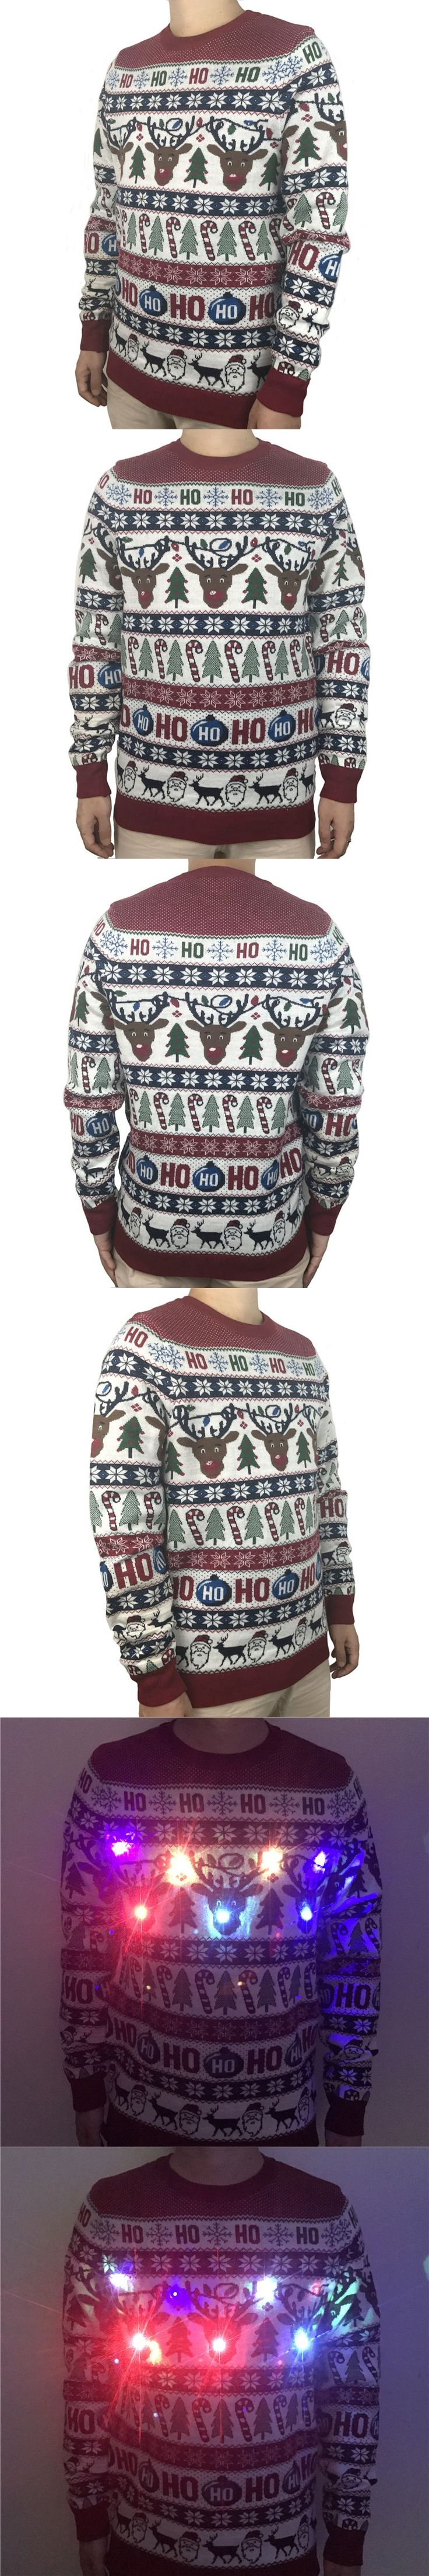 Funny Light Up Ugly Christmas Sweater for Men and Women Cute Reindeer Santa Patterned Xmas Pullover Jumper Plus Size S-2XL